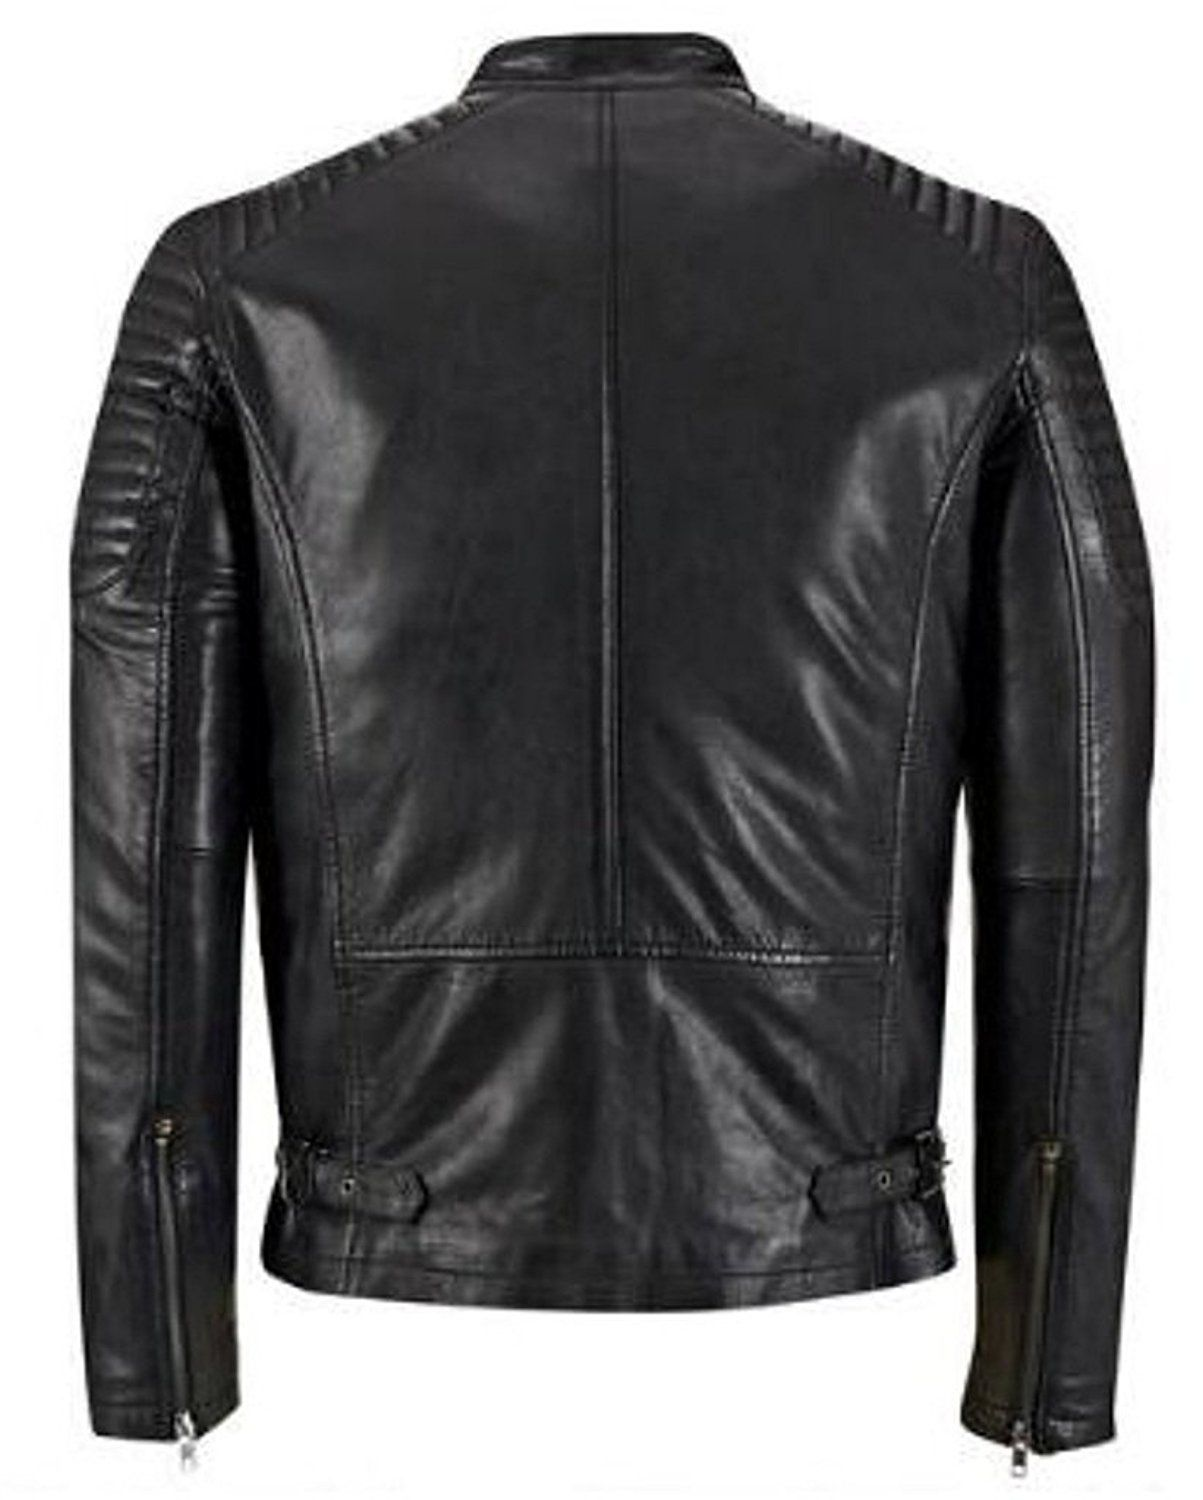 The Leather Factory Men S Genuine Lambskin Leather Jacket With Quilted Shoulders At Amazon Men S Clot Leather Jacket Men Leather Jacket Lambskin Leather Jacket [ 1500 x 1203 Pixel ]